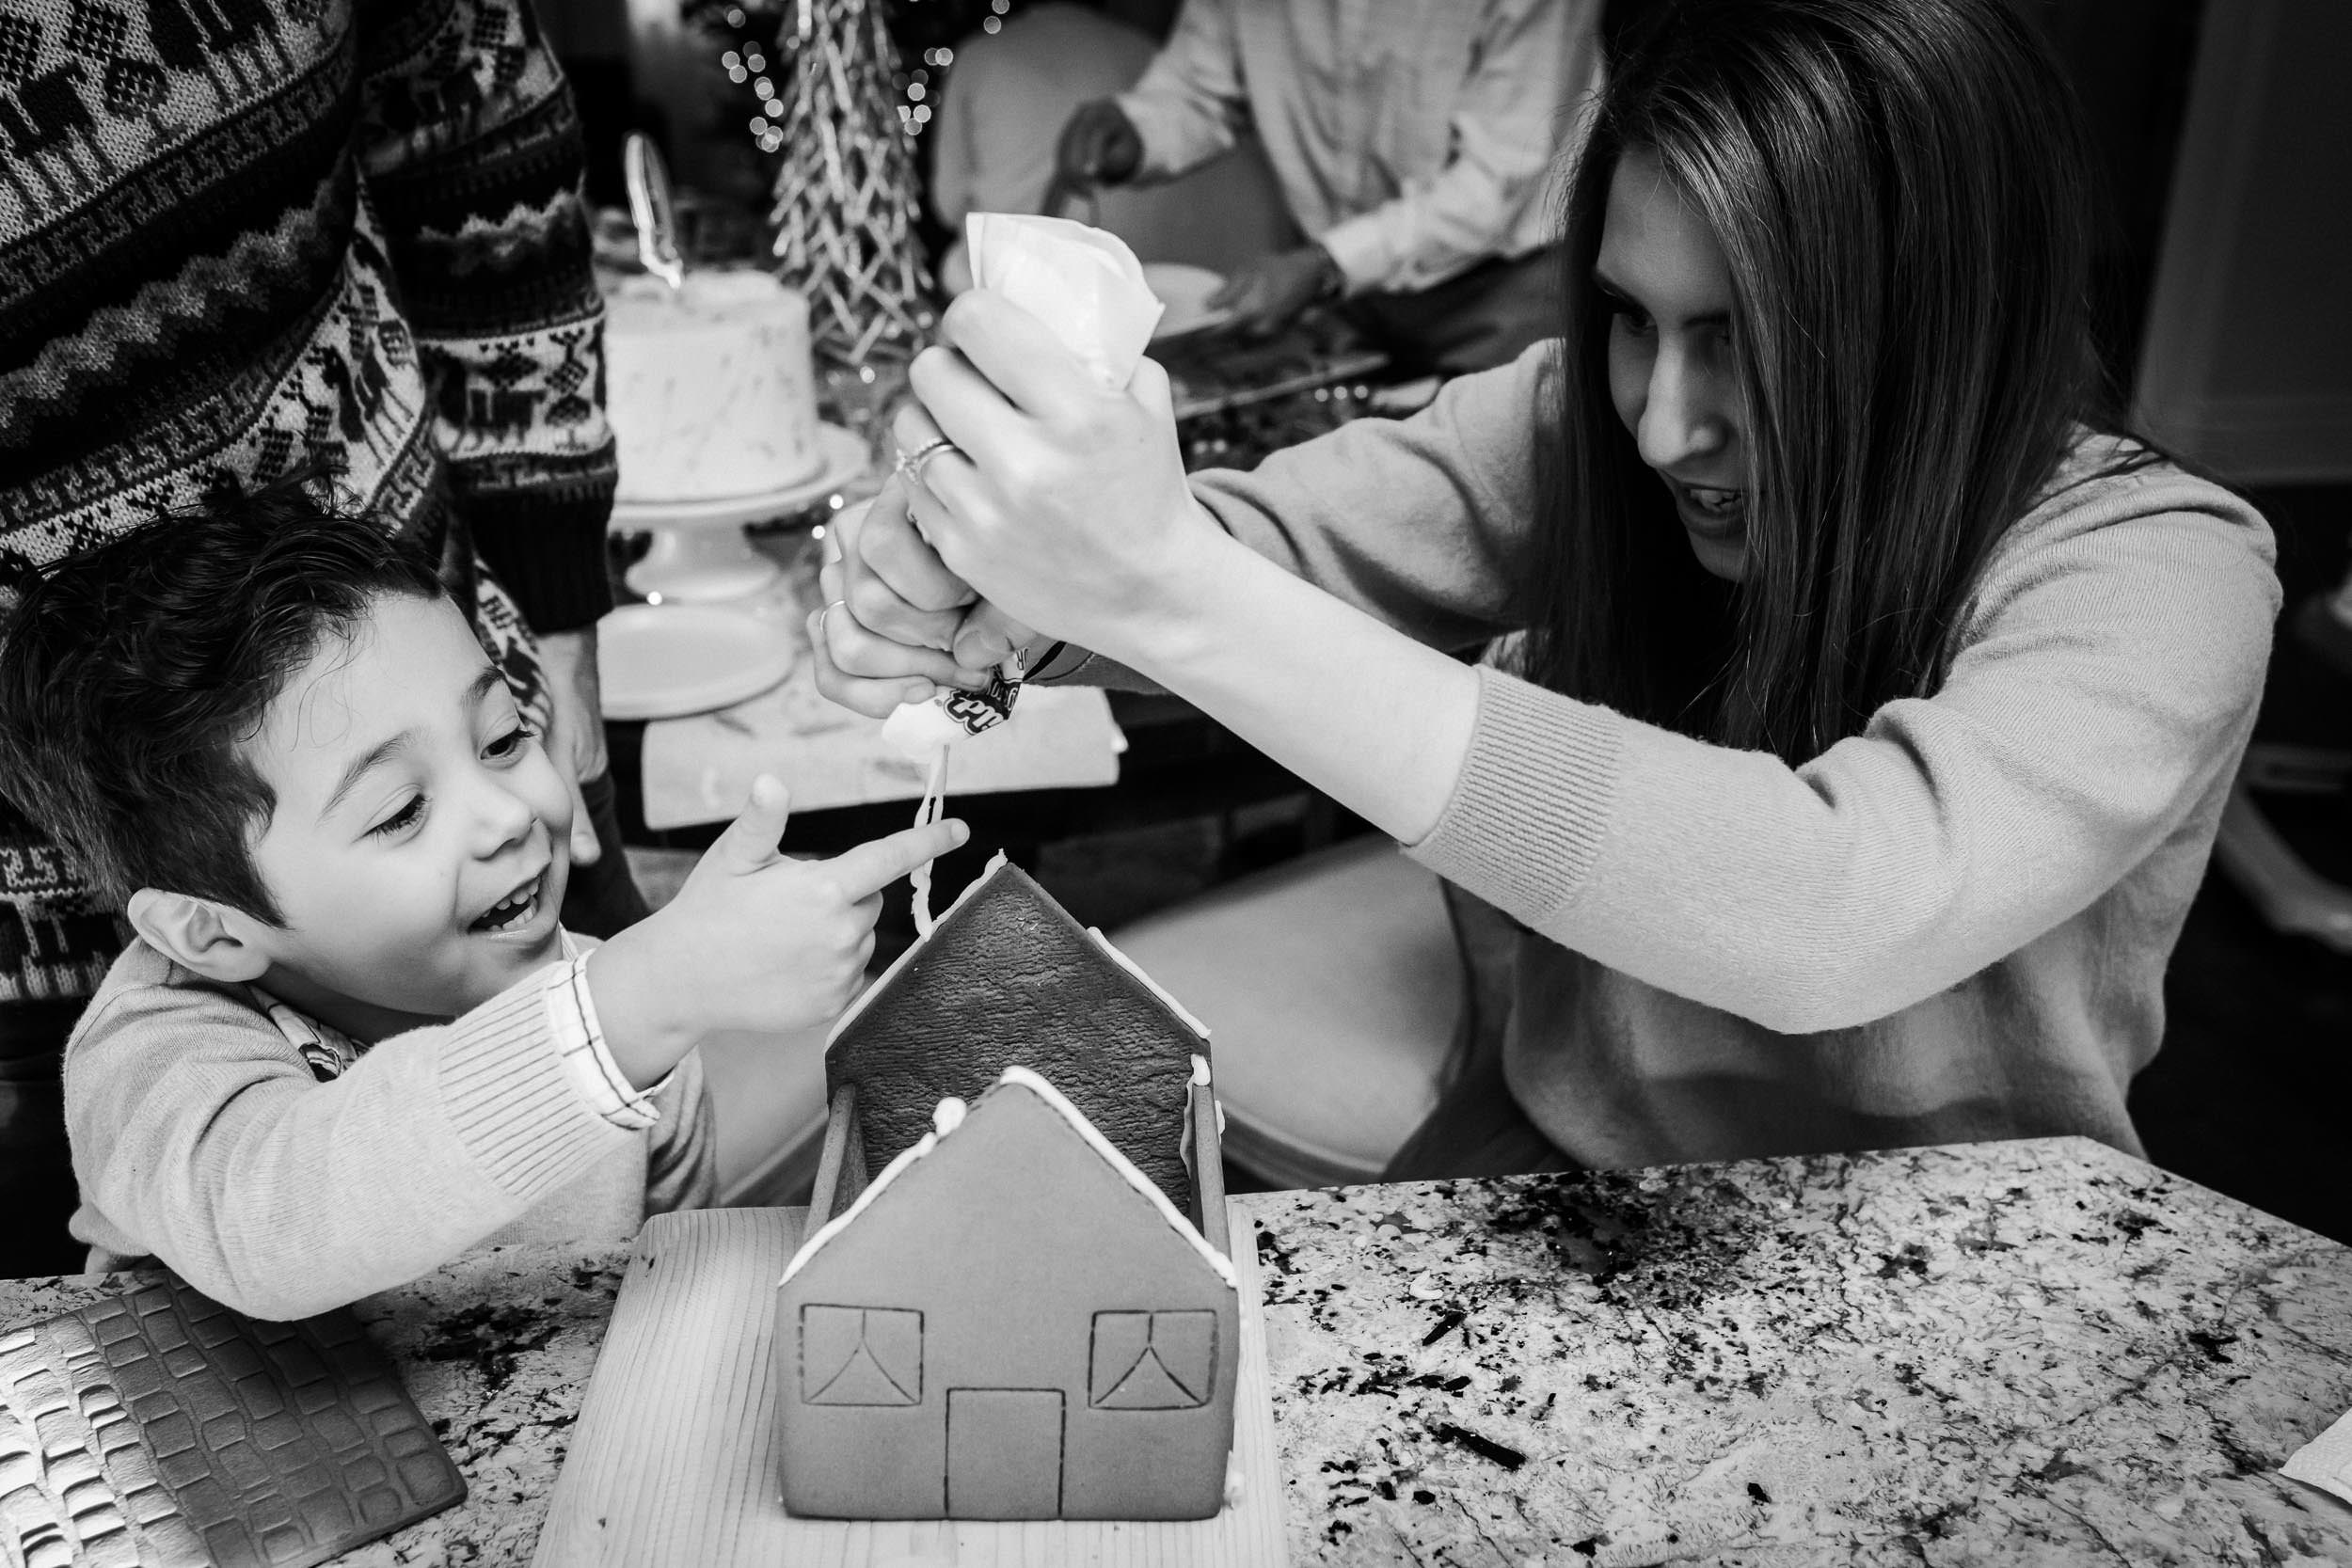 building a cookie house with your aunt is fun, messy and worth remembering.